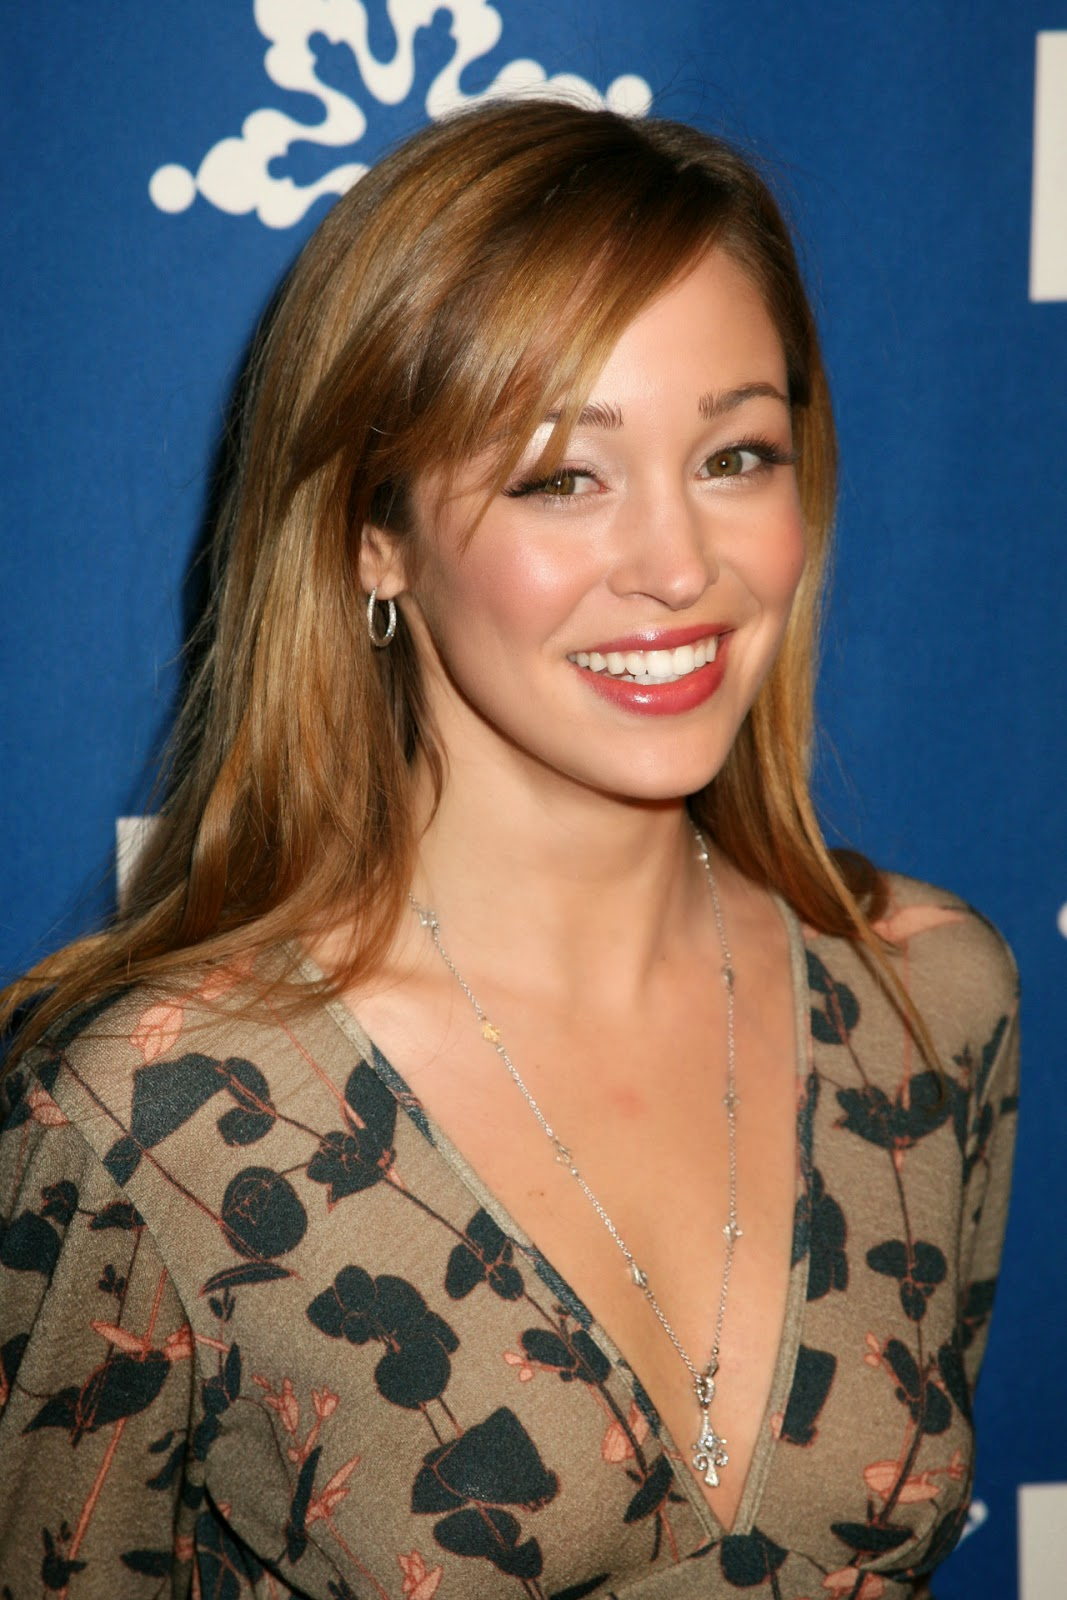 Hollywood Actress Wallpaper: Autumn Reeser HD Wallpapers